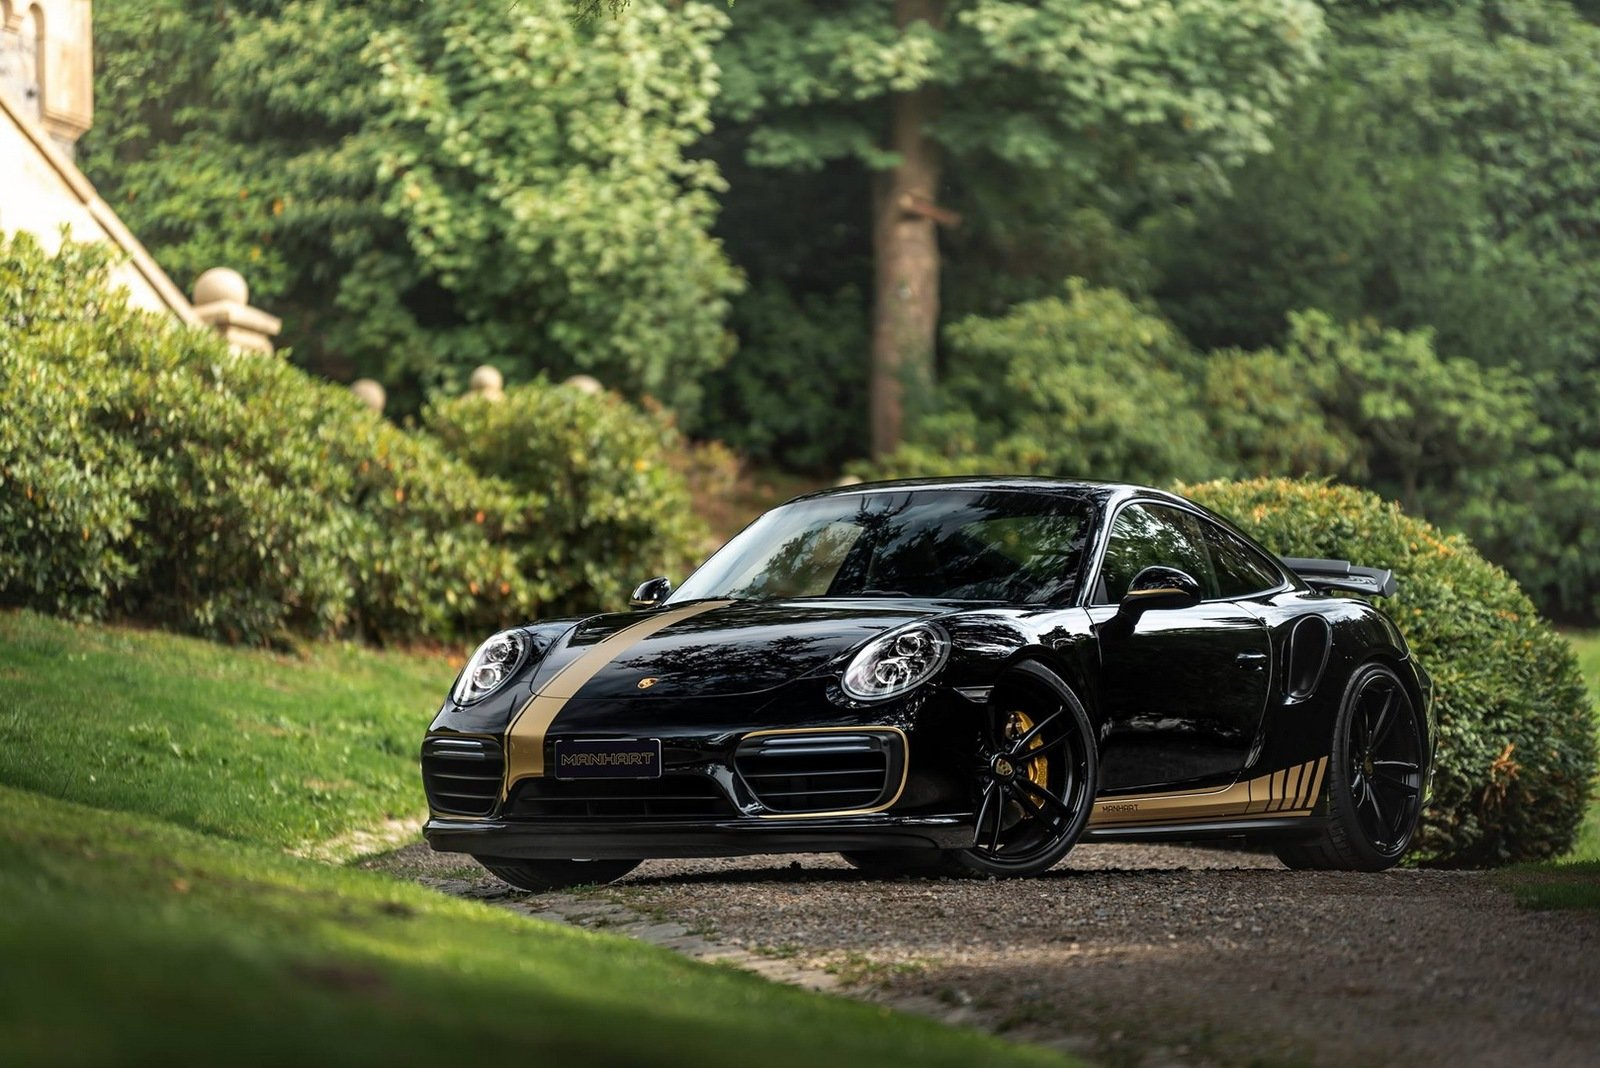 Model Cars For Sale >> 2018 Porsche 911 Turbo By Manhart | Top Speed